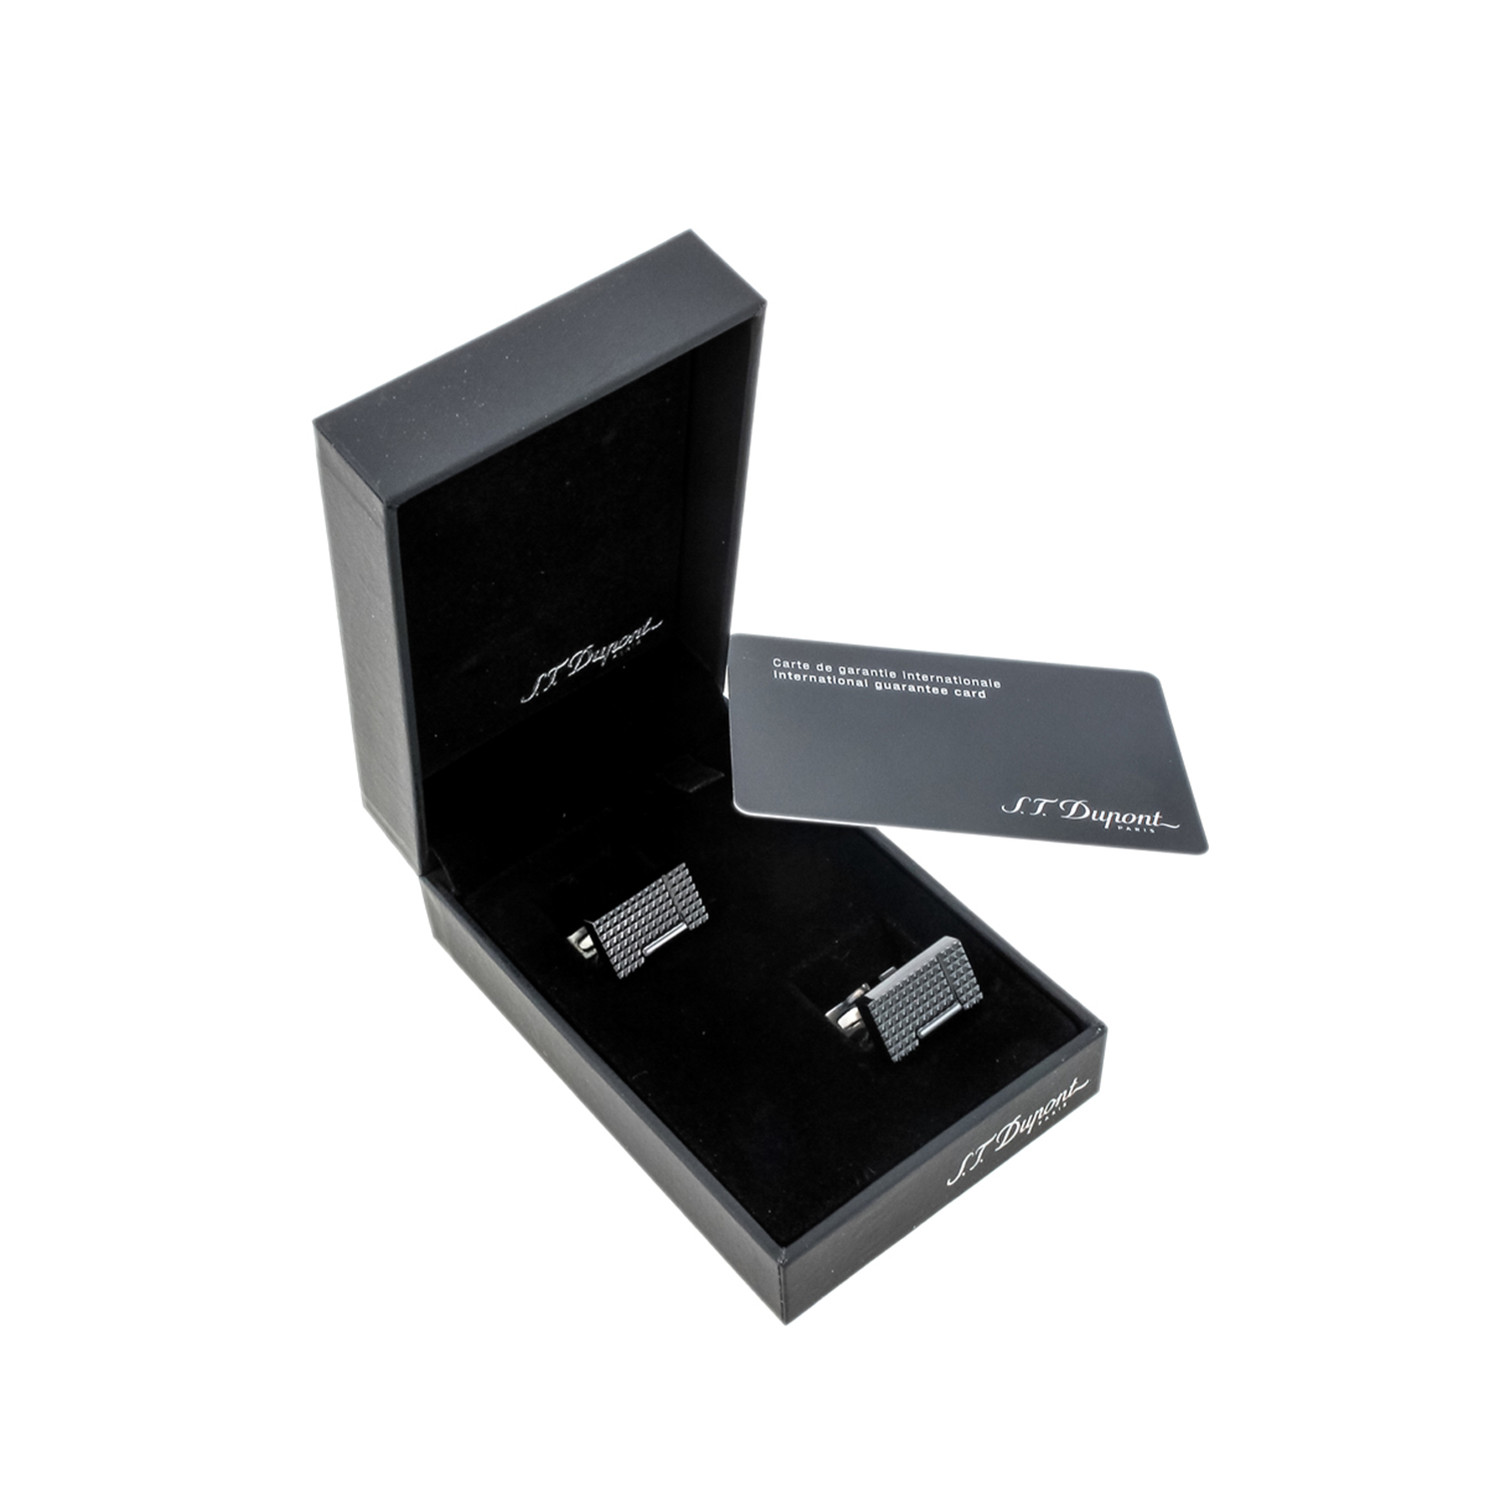 Măng séc S.T. Dupont Cufflinks, Black PVD Lighter 005370N